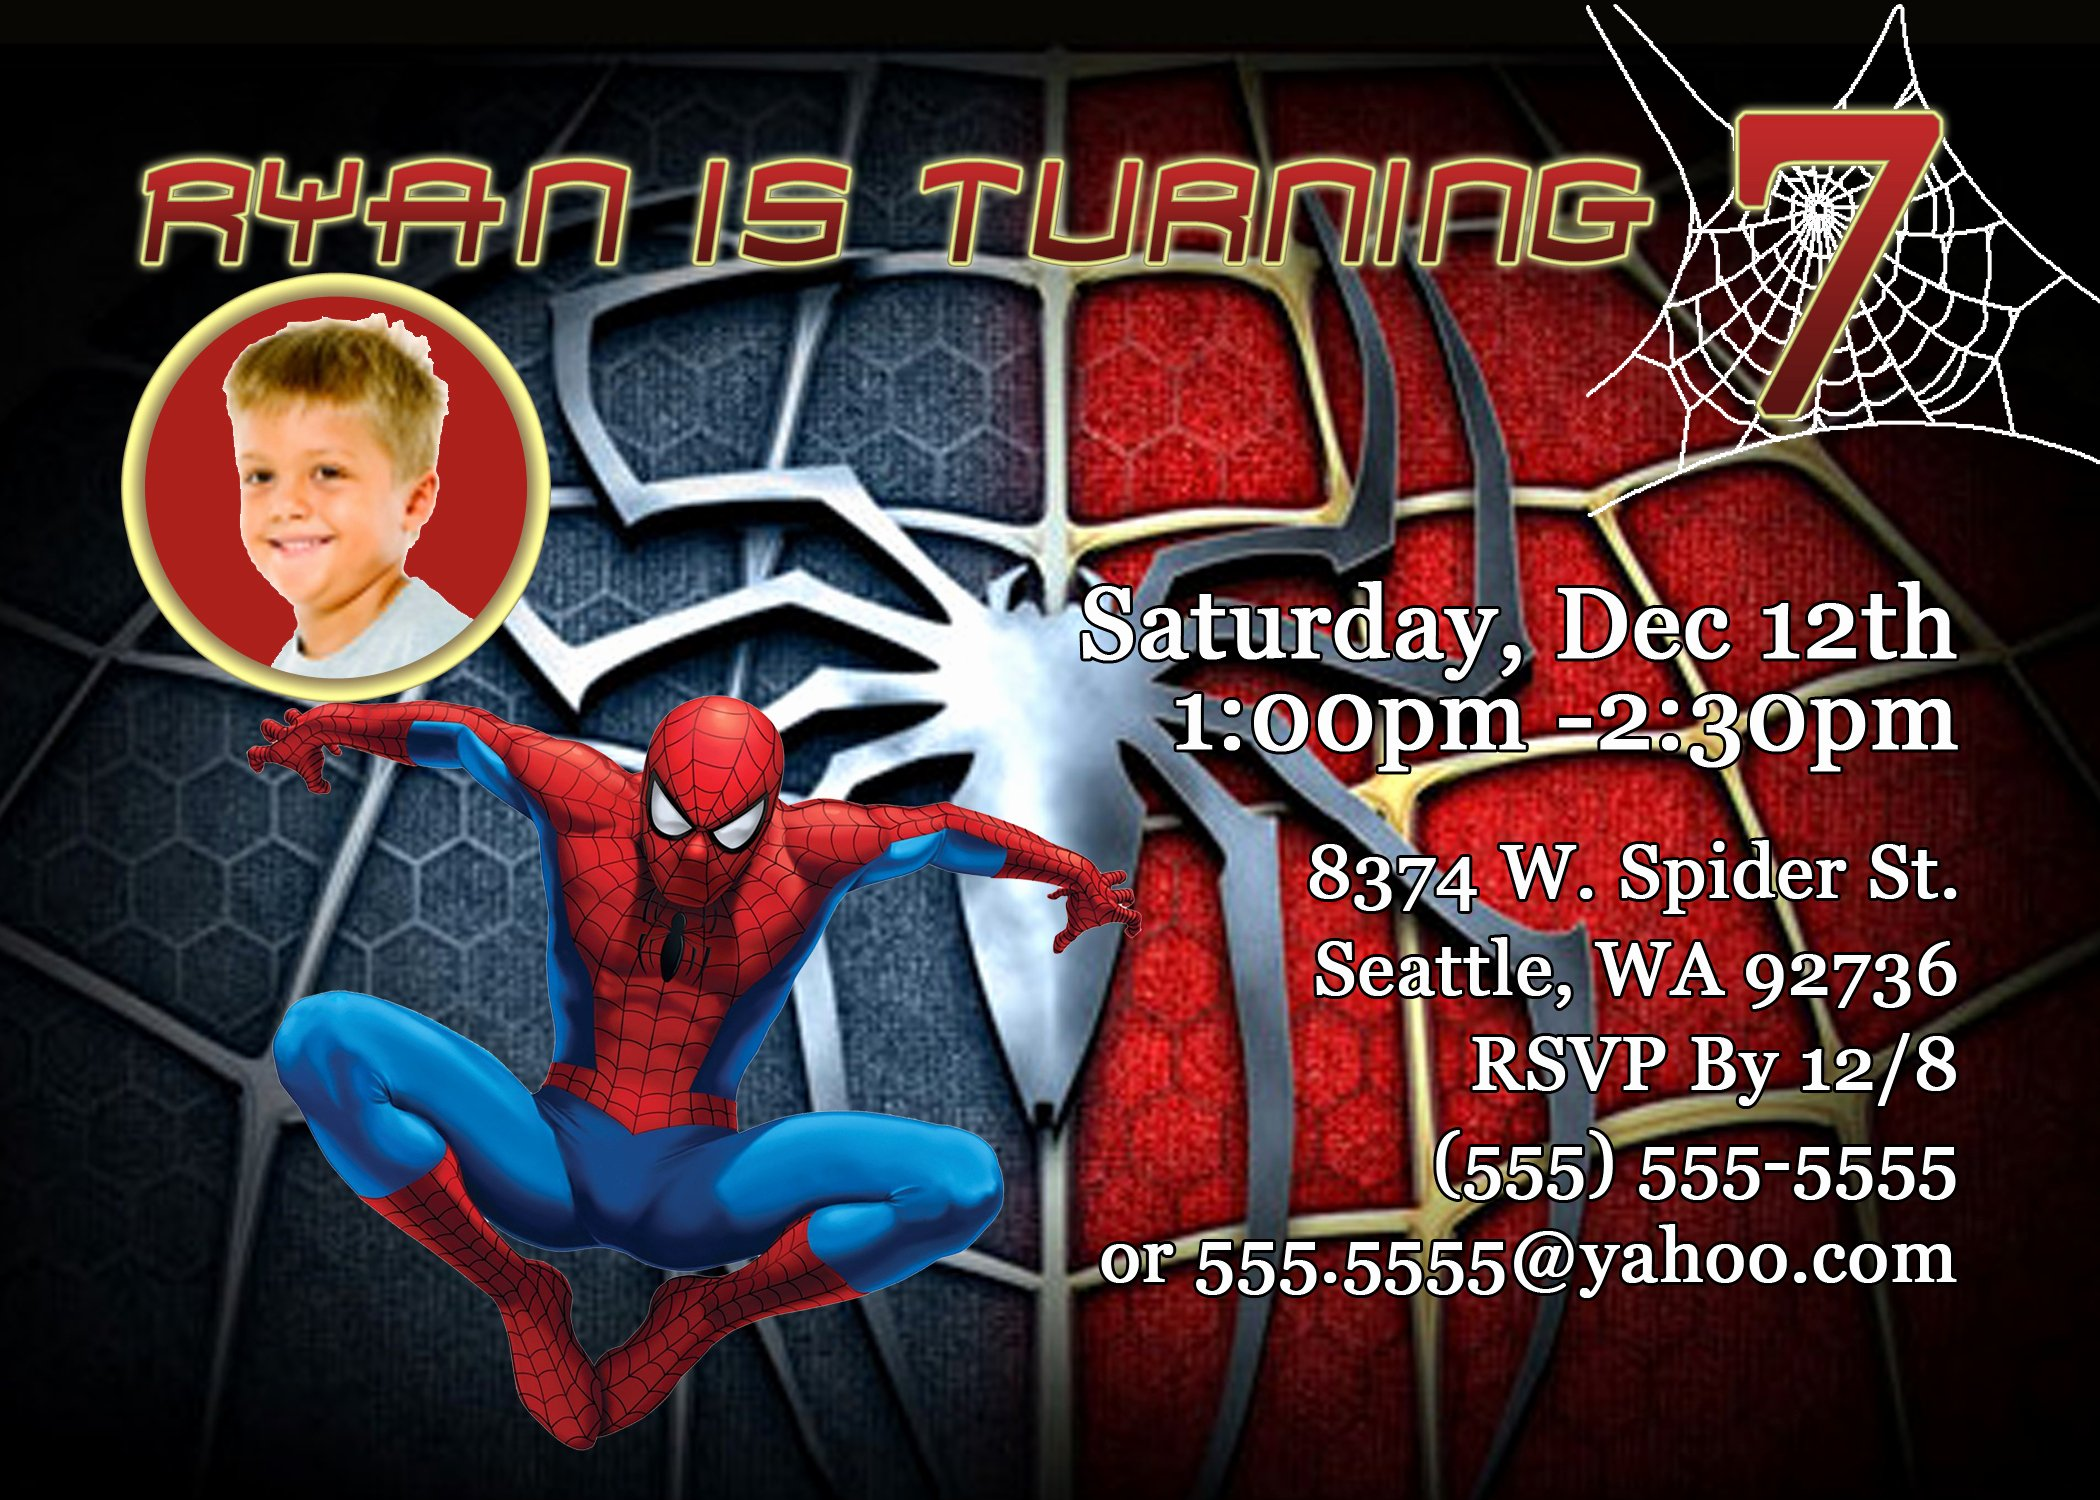 Spiderman Birthday Invitation Template Lovely Kids Birthday Party Invitations Wording